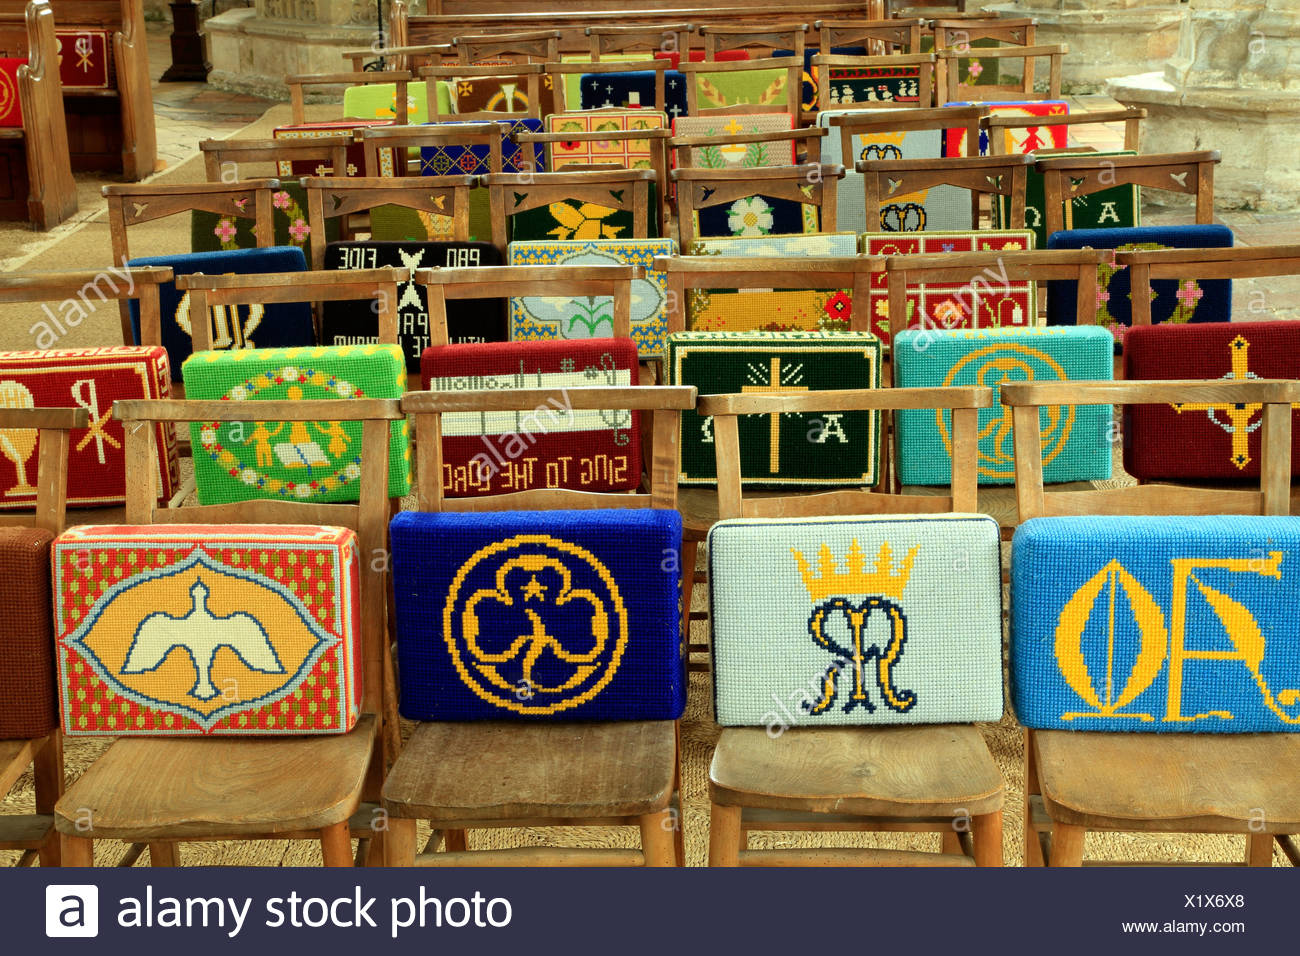 church chairs with kneelers lane recliner hassocks stock photos and images alamy